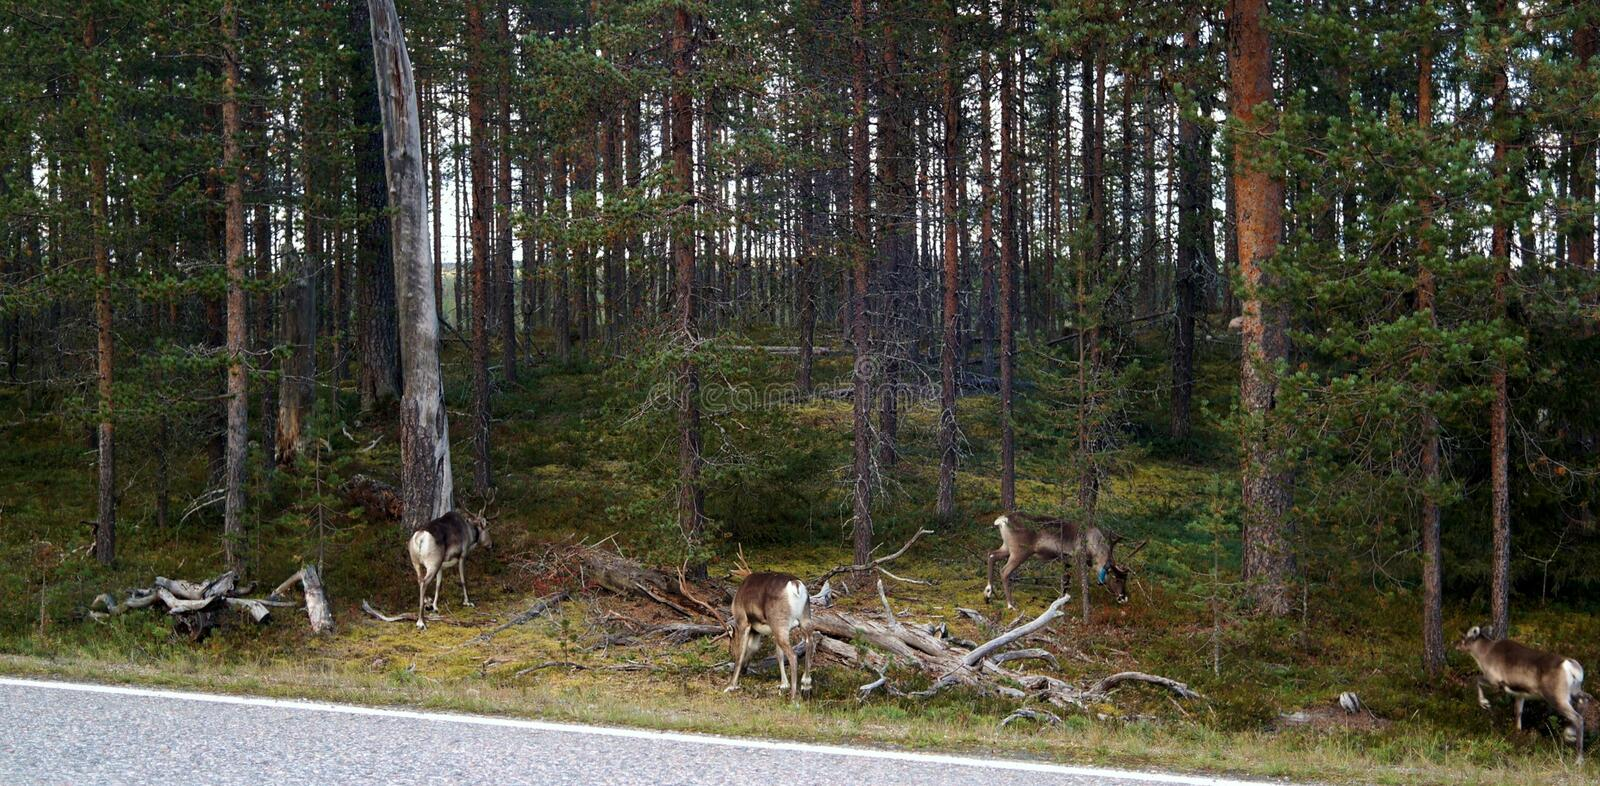 Reindeers. A few reindeers in a forest stock photo